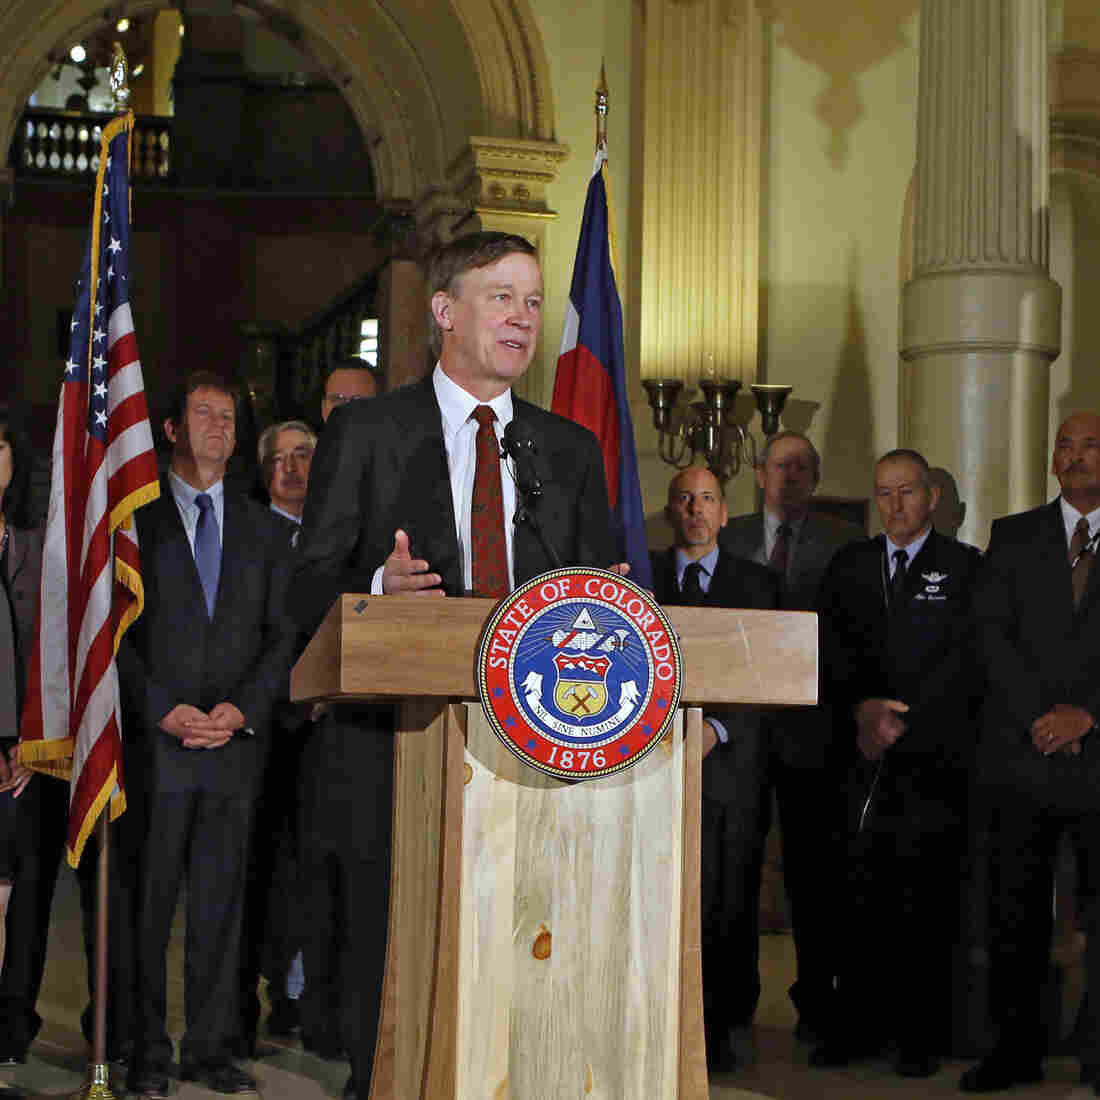 Colorado Governor Signs 'Landmark' Restriction On Guns Into Law